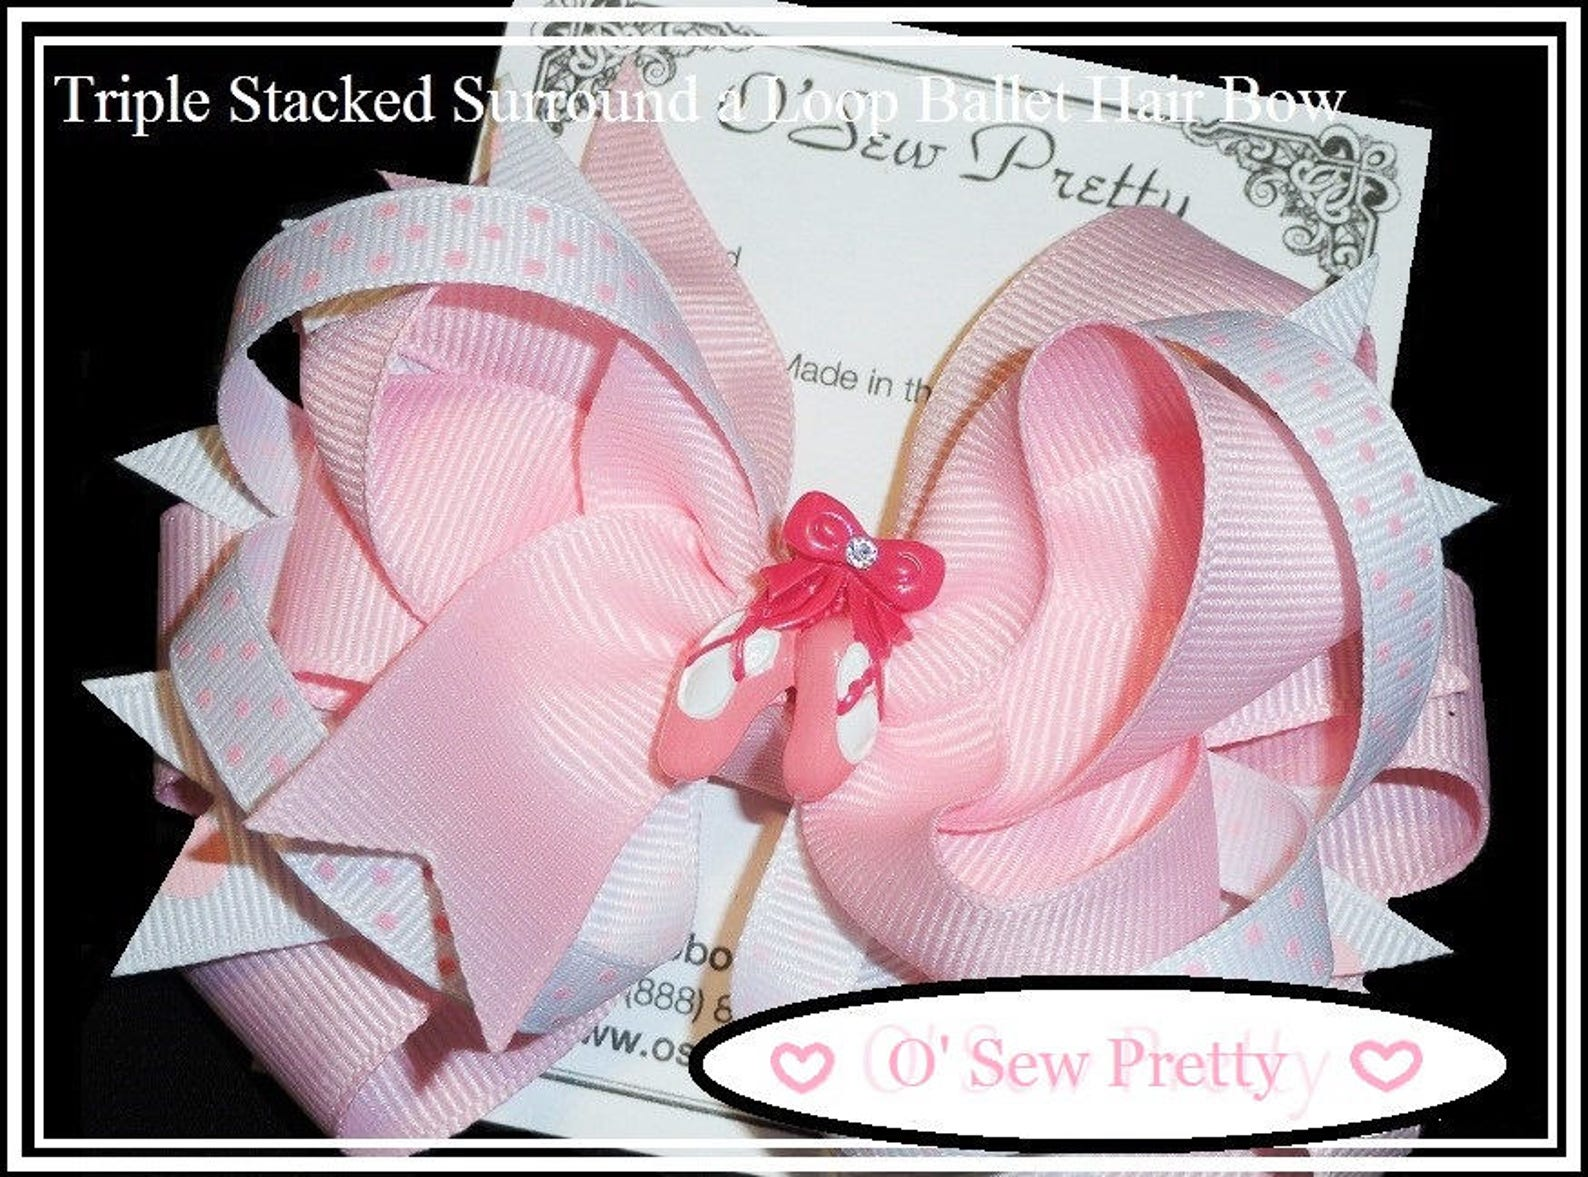 ballet hair bows, ballerina hair accessory, ballerina hair bow, pink ballet hair bow, ballet hair bows, over the top pink ballet